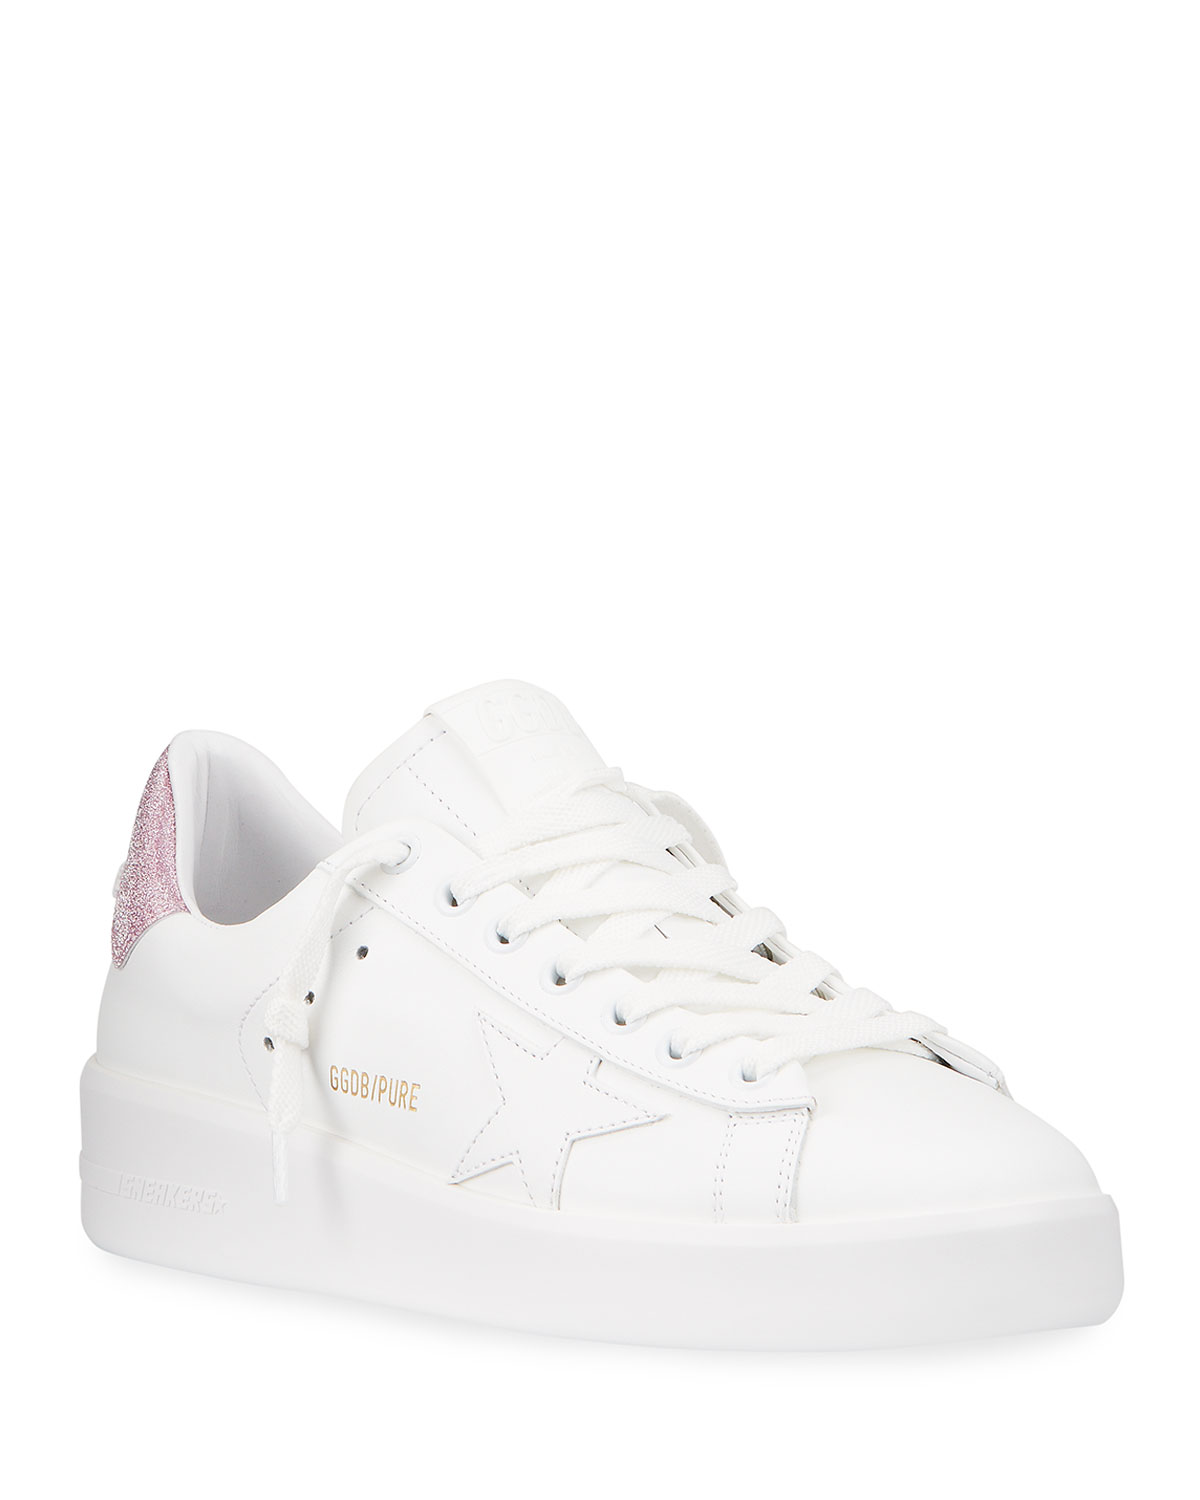 Pure Star Leather Glitter Low-Top Sneakers